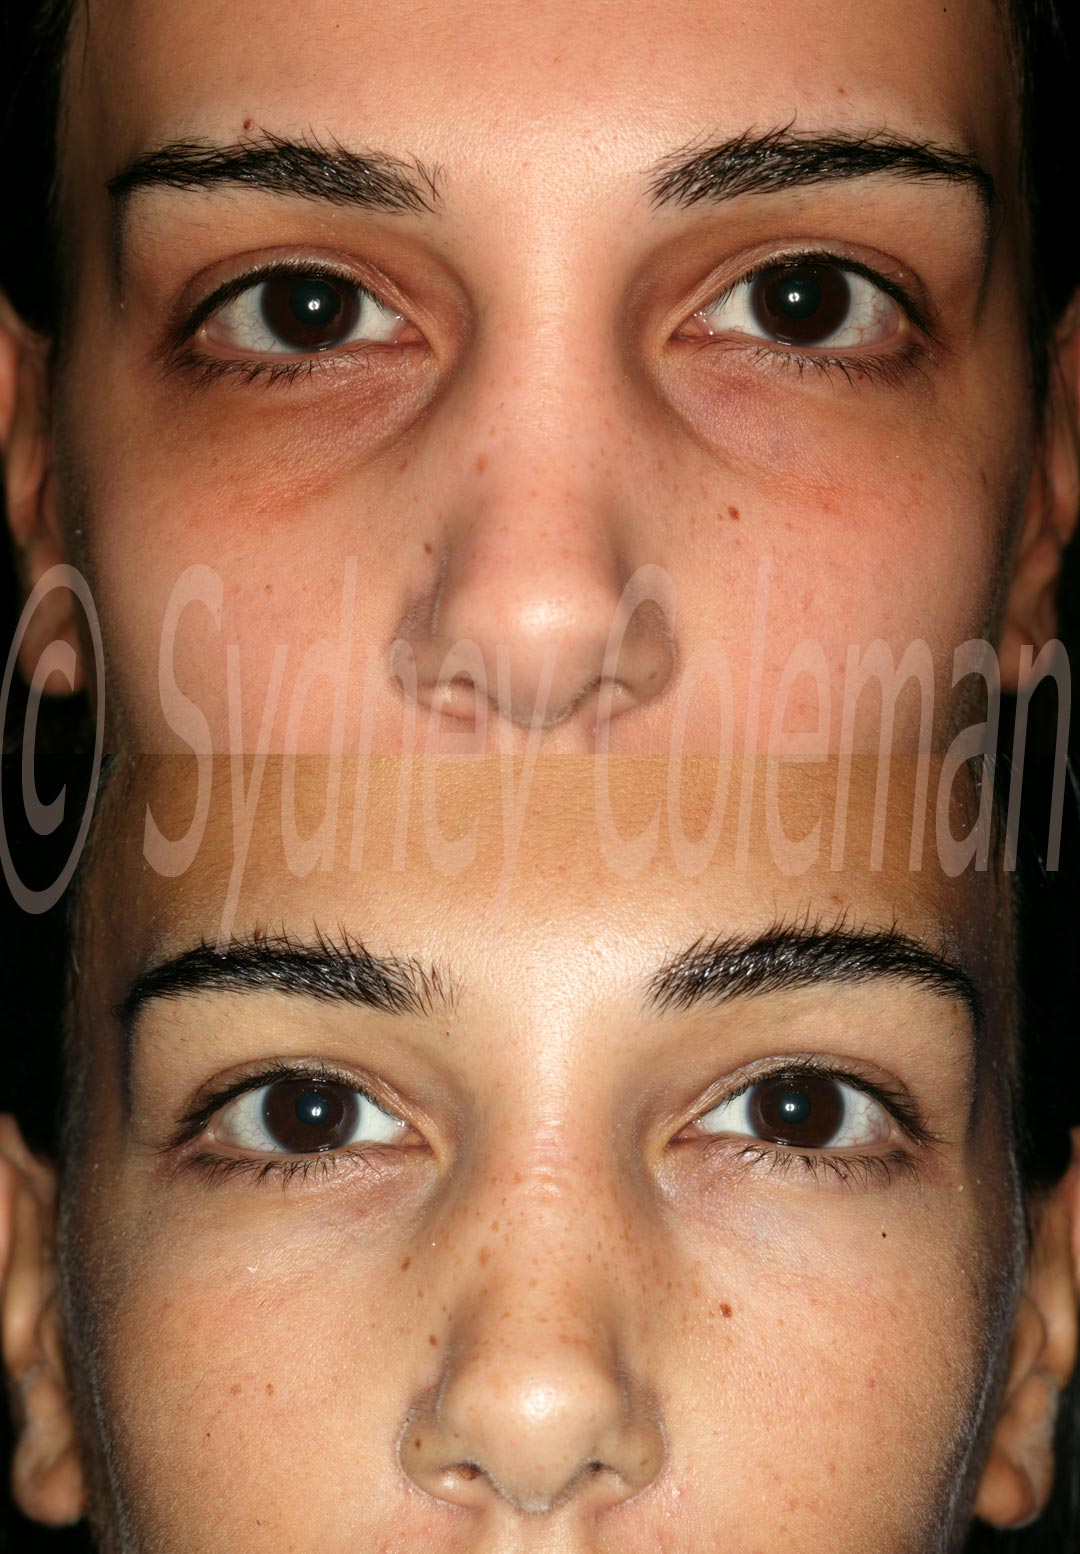 Dark Eyelid Circles A Unique Solution Using One's Own Body ...